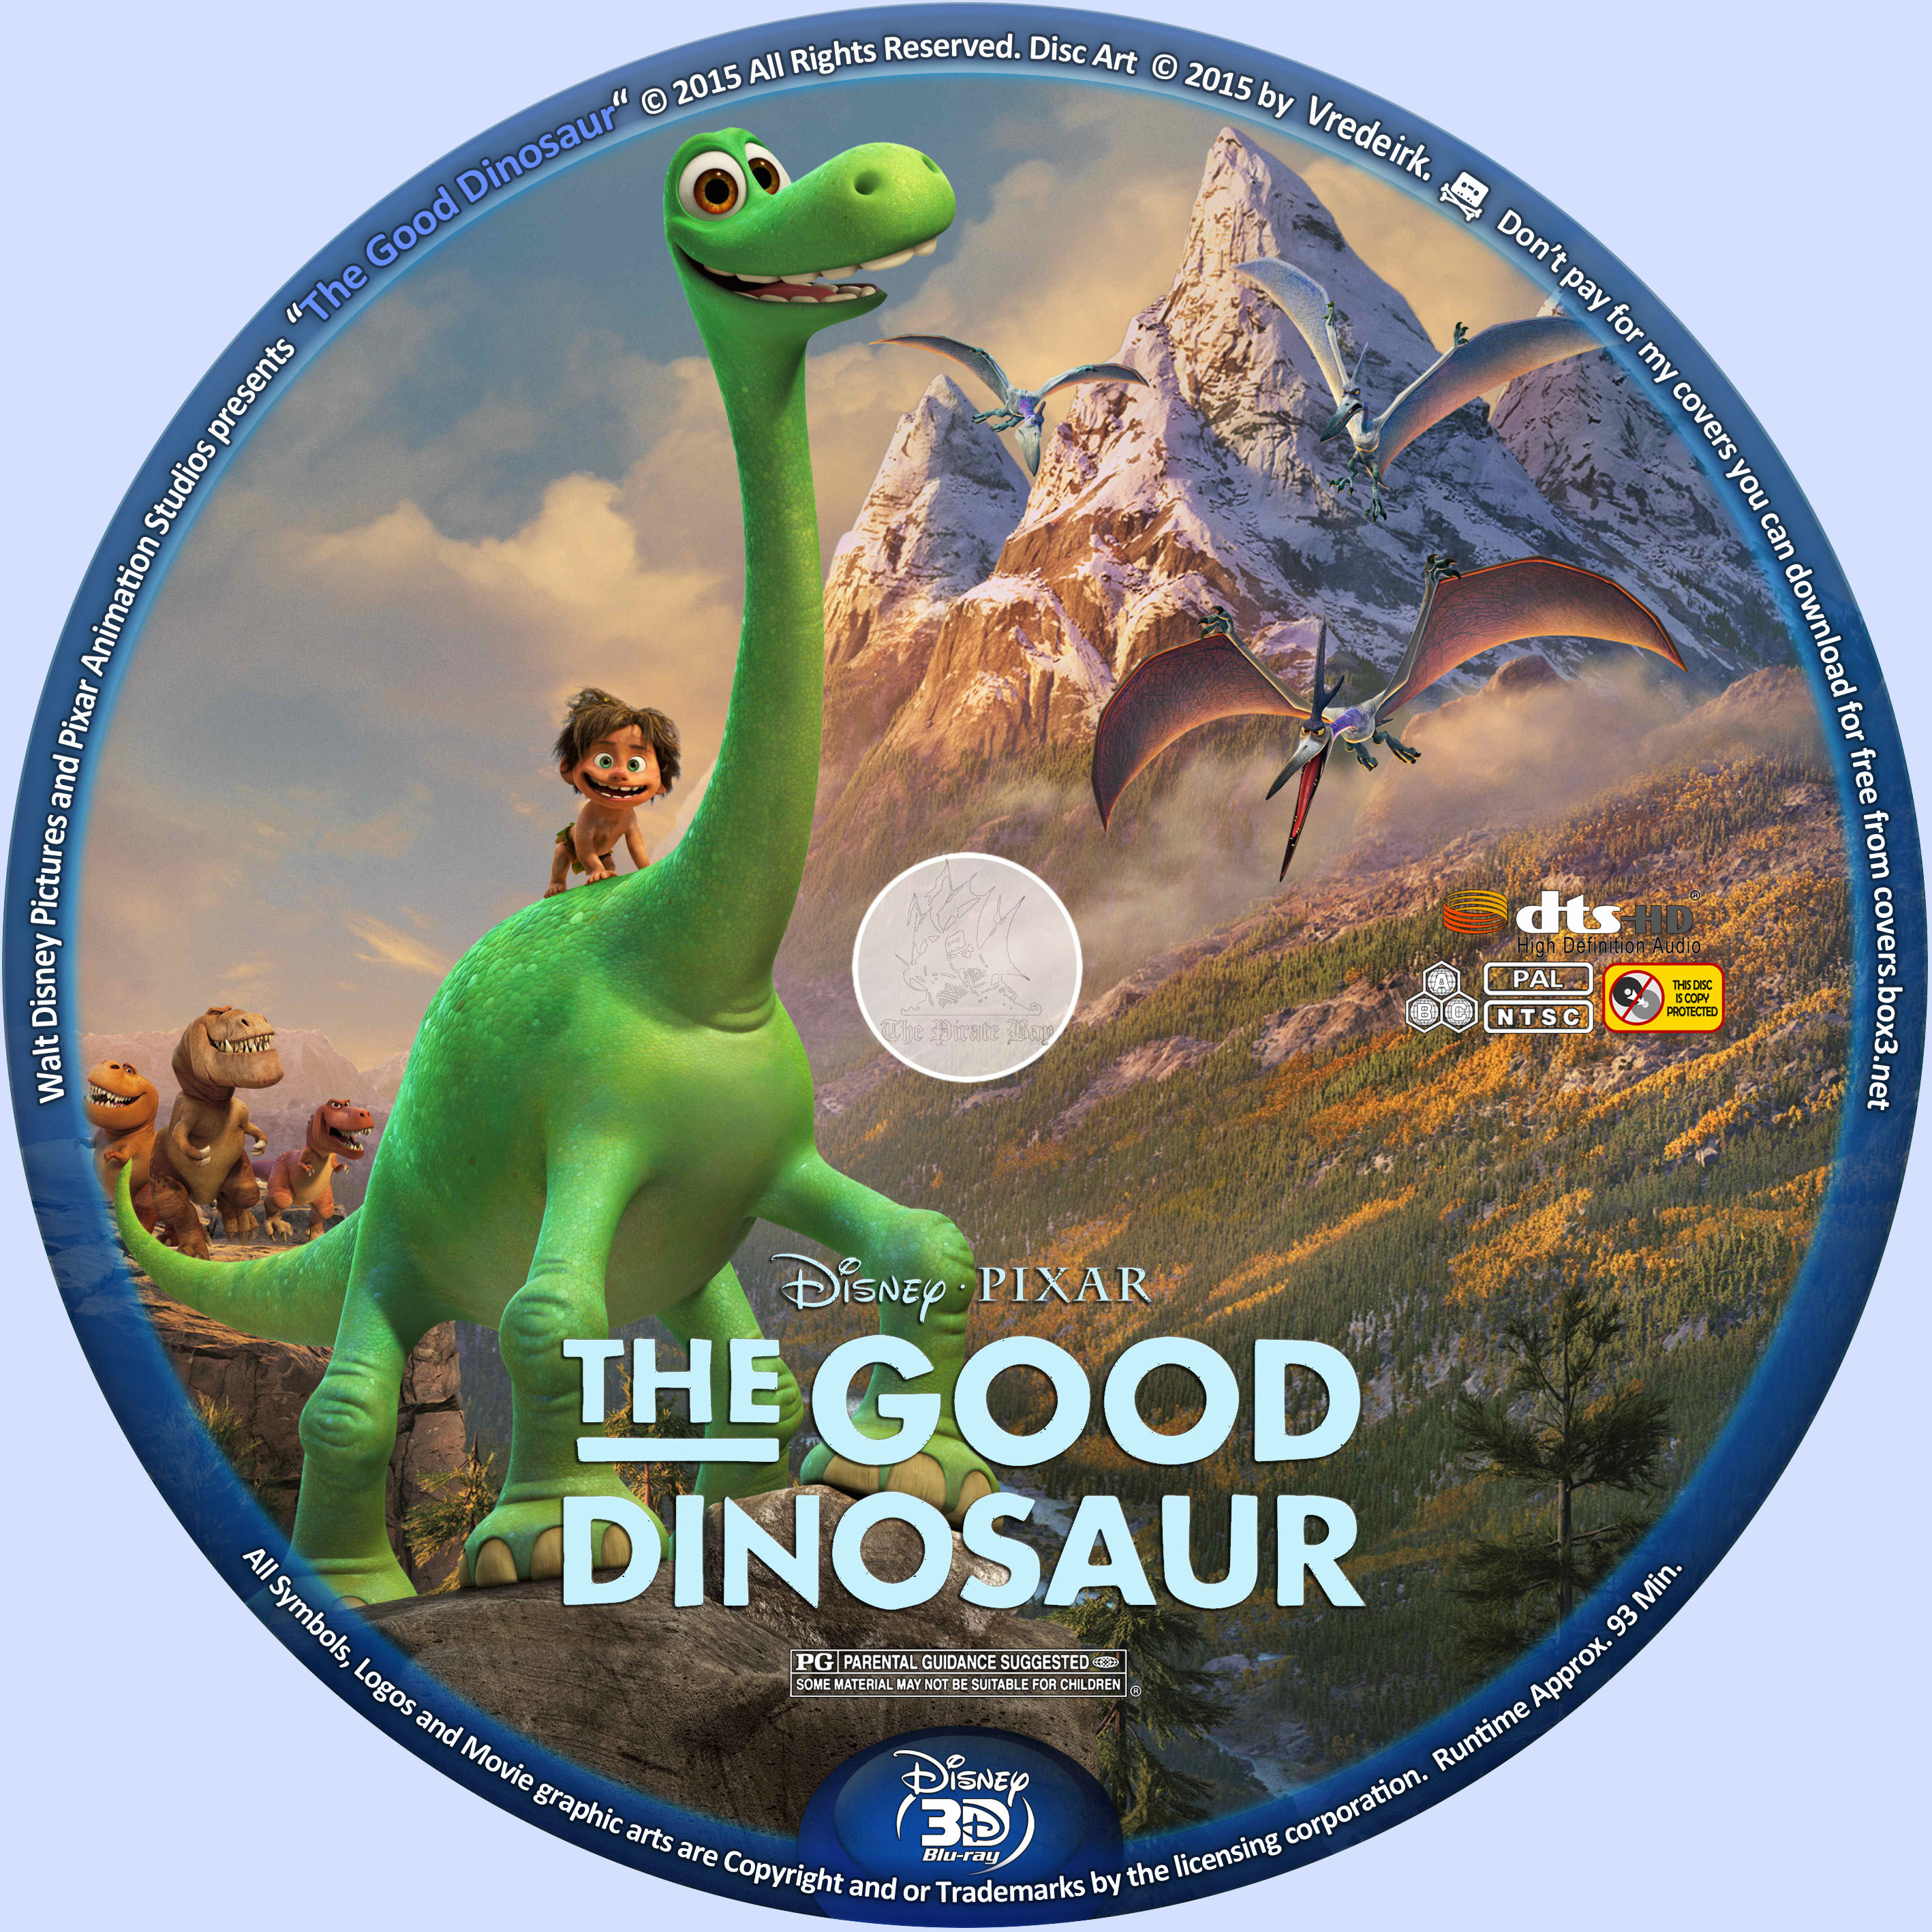 The Good Dinosaur full trailer